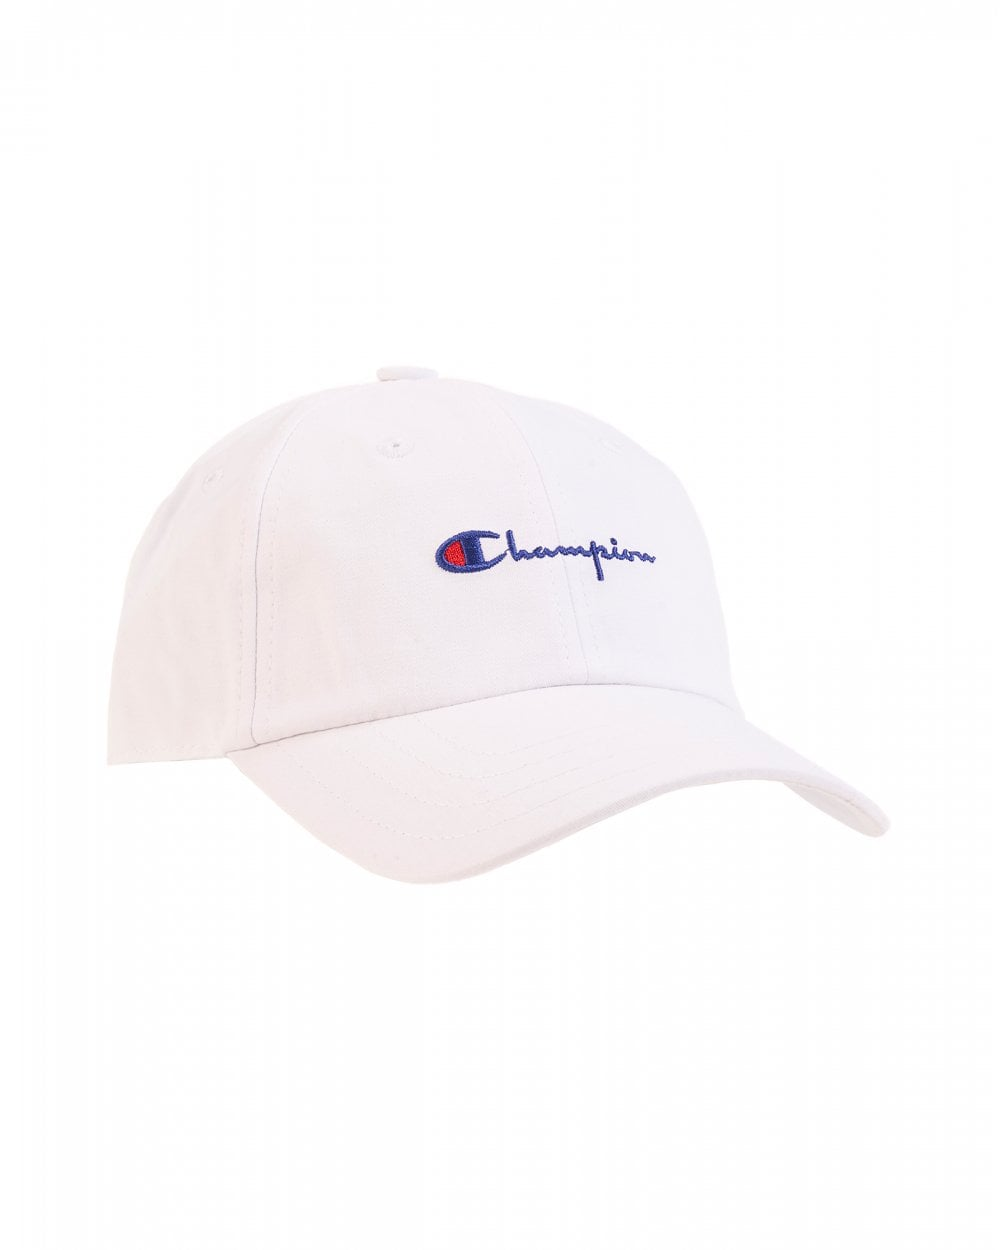 35e6cef9a00 Champion Mens White Script Hat